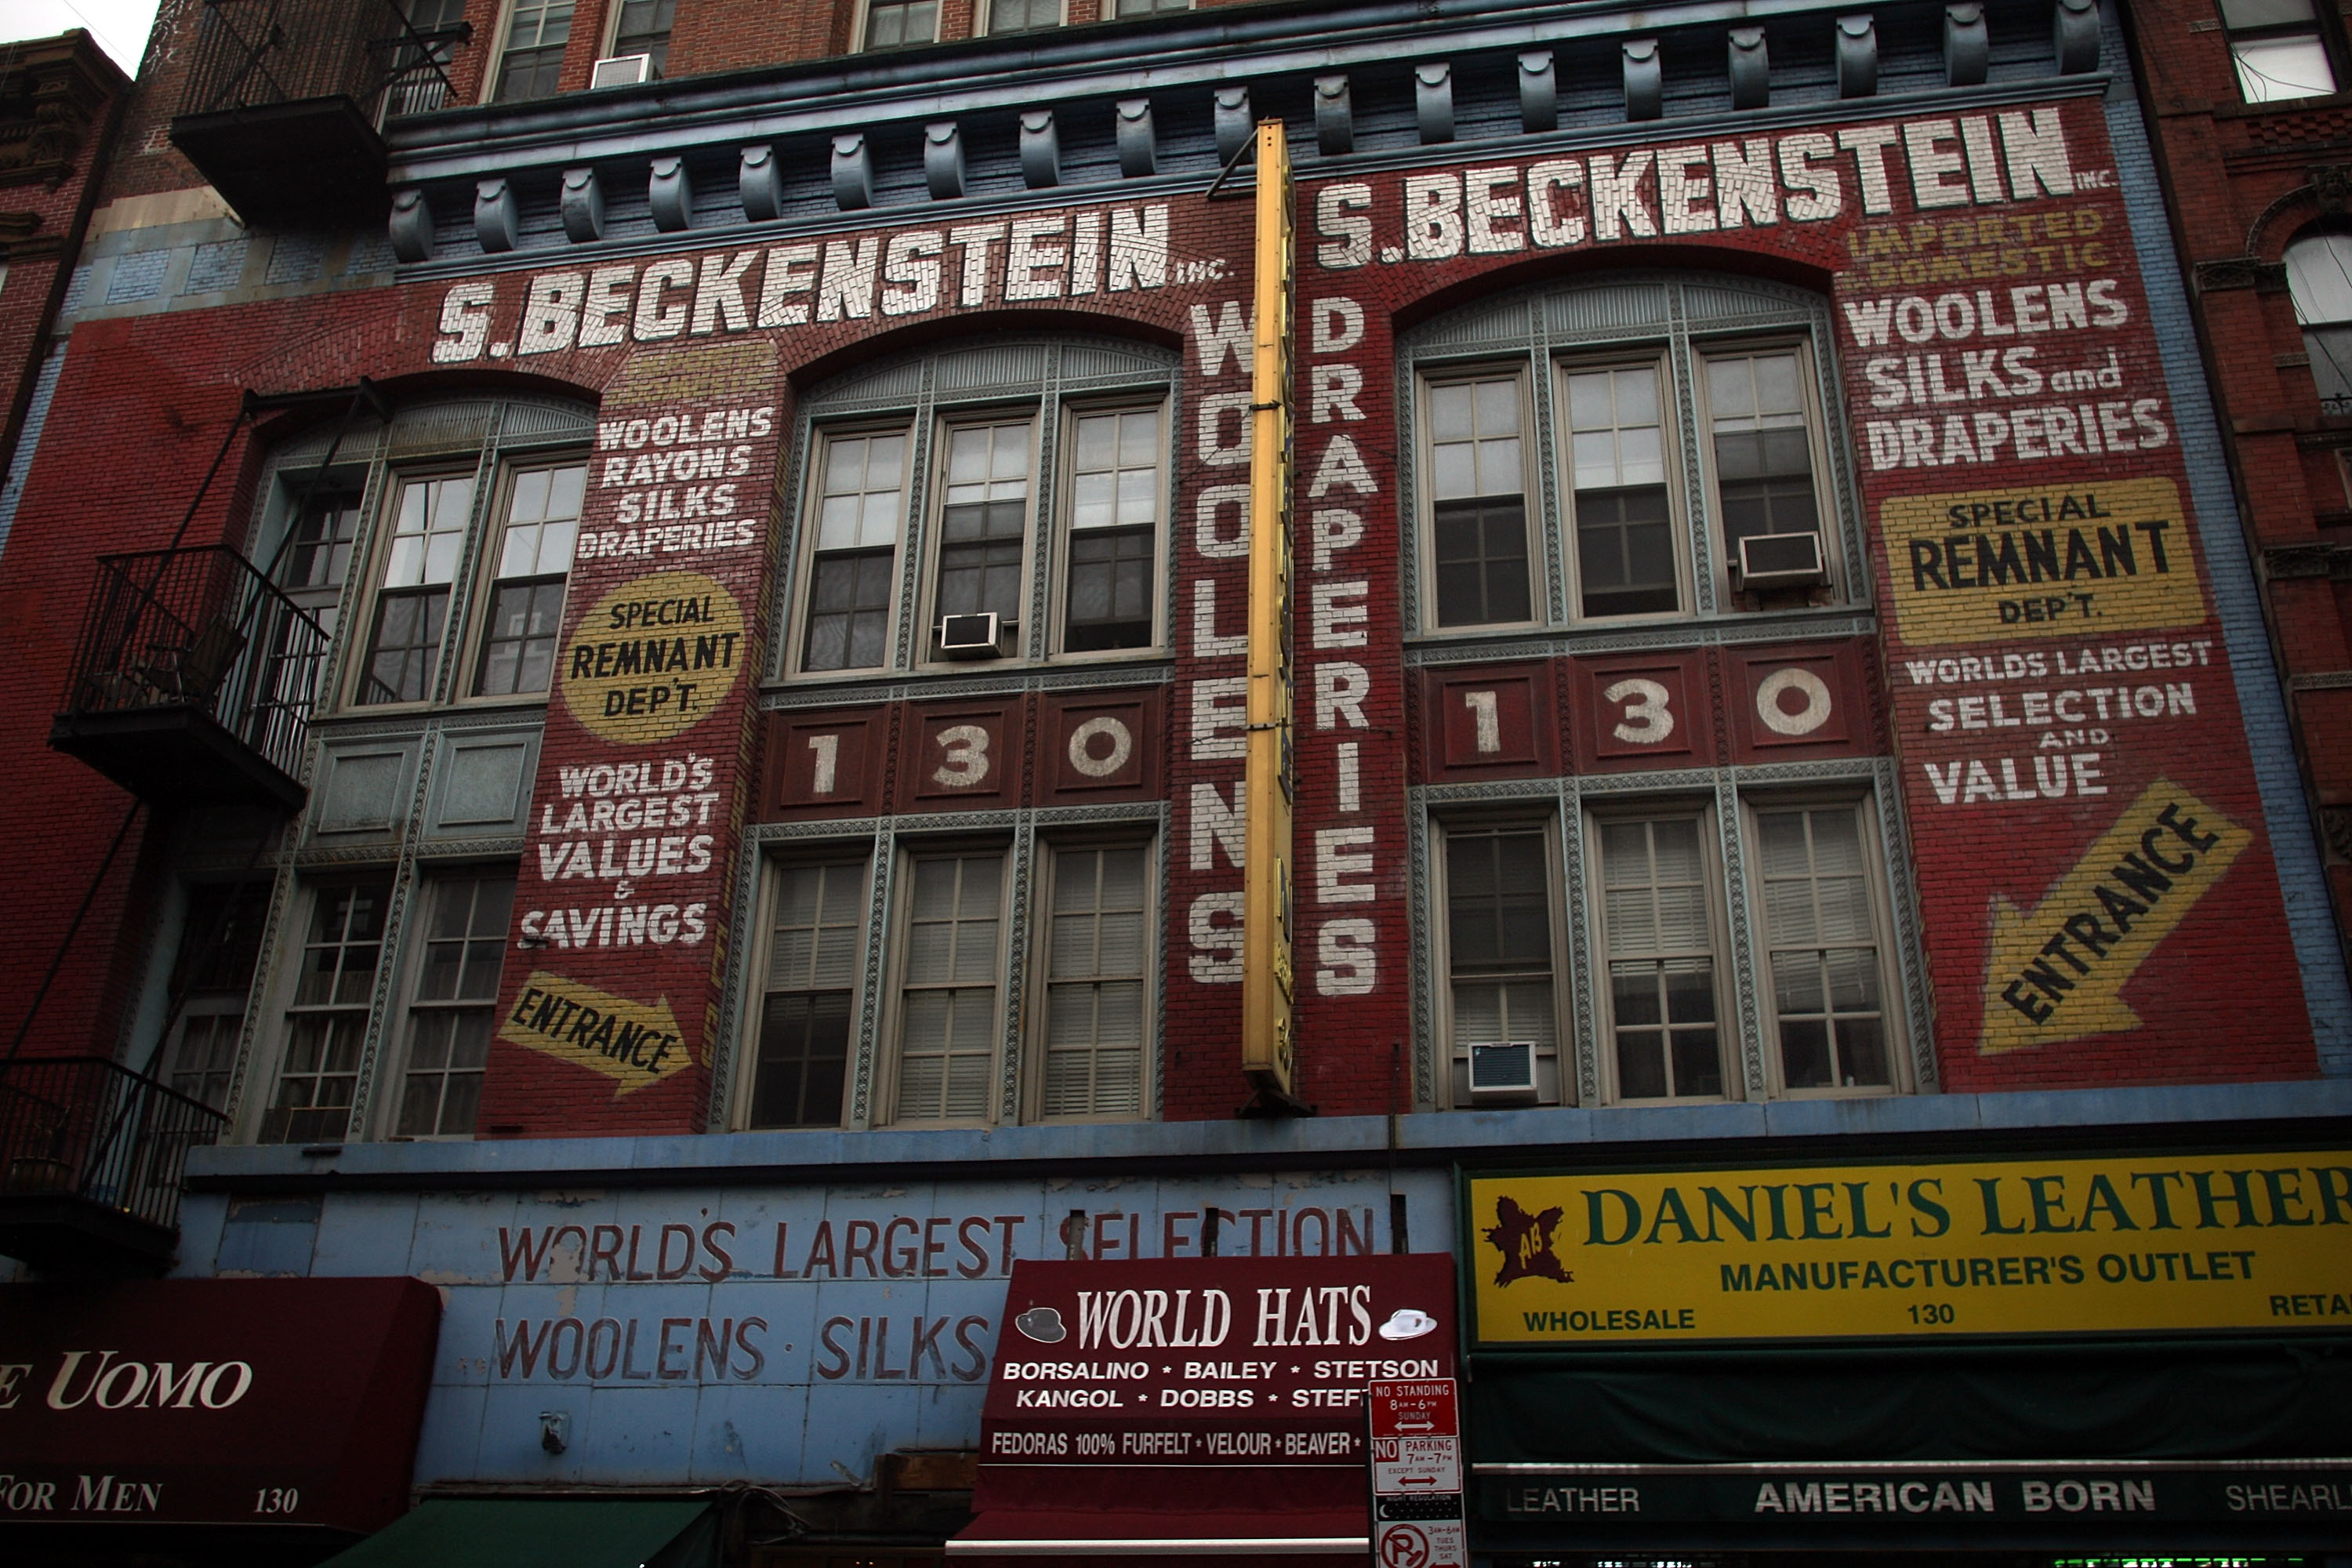 An aging department store is one of only a handful still standing on Orchard Street in the Lower East Side.